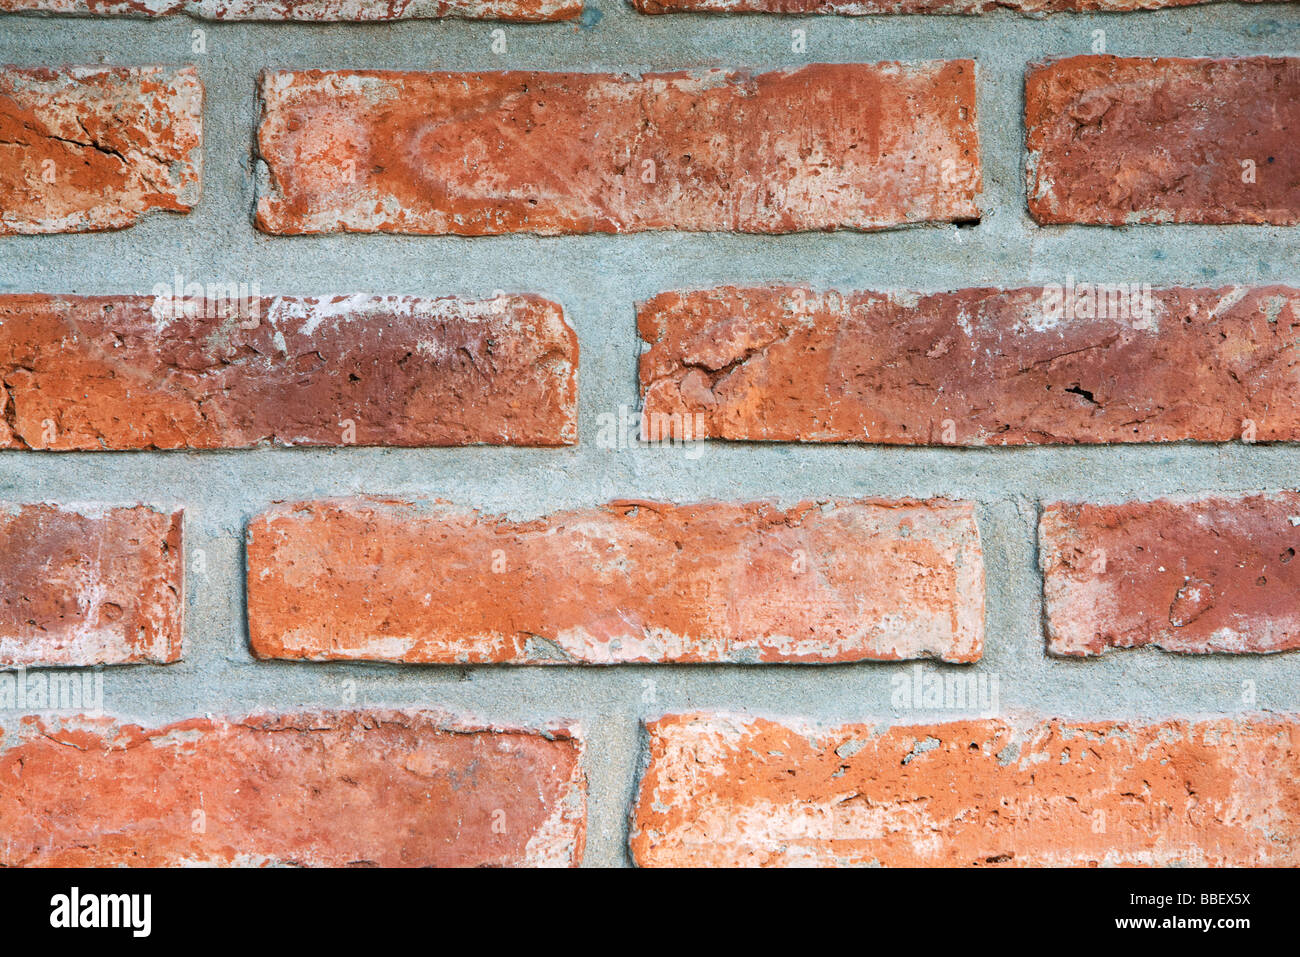 Brick wall, close-up - Stock Image